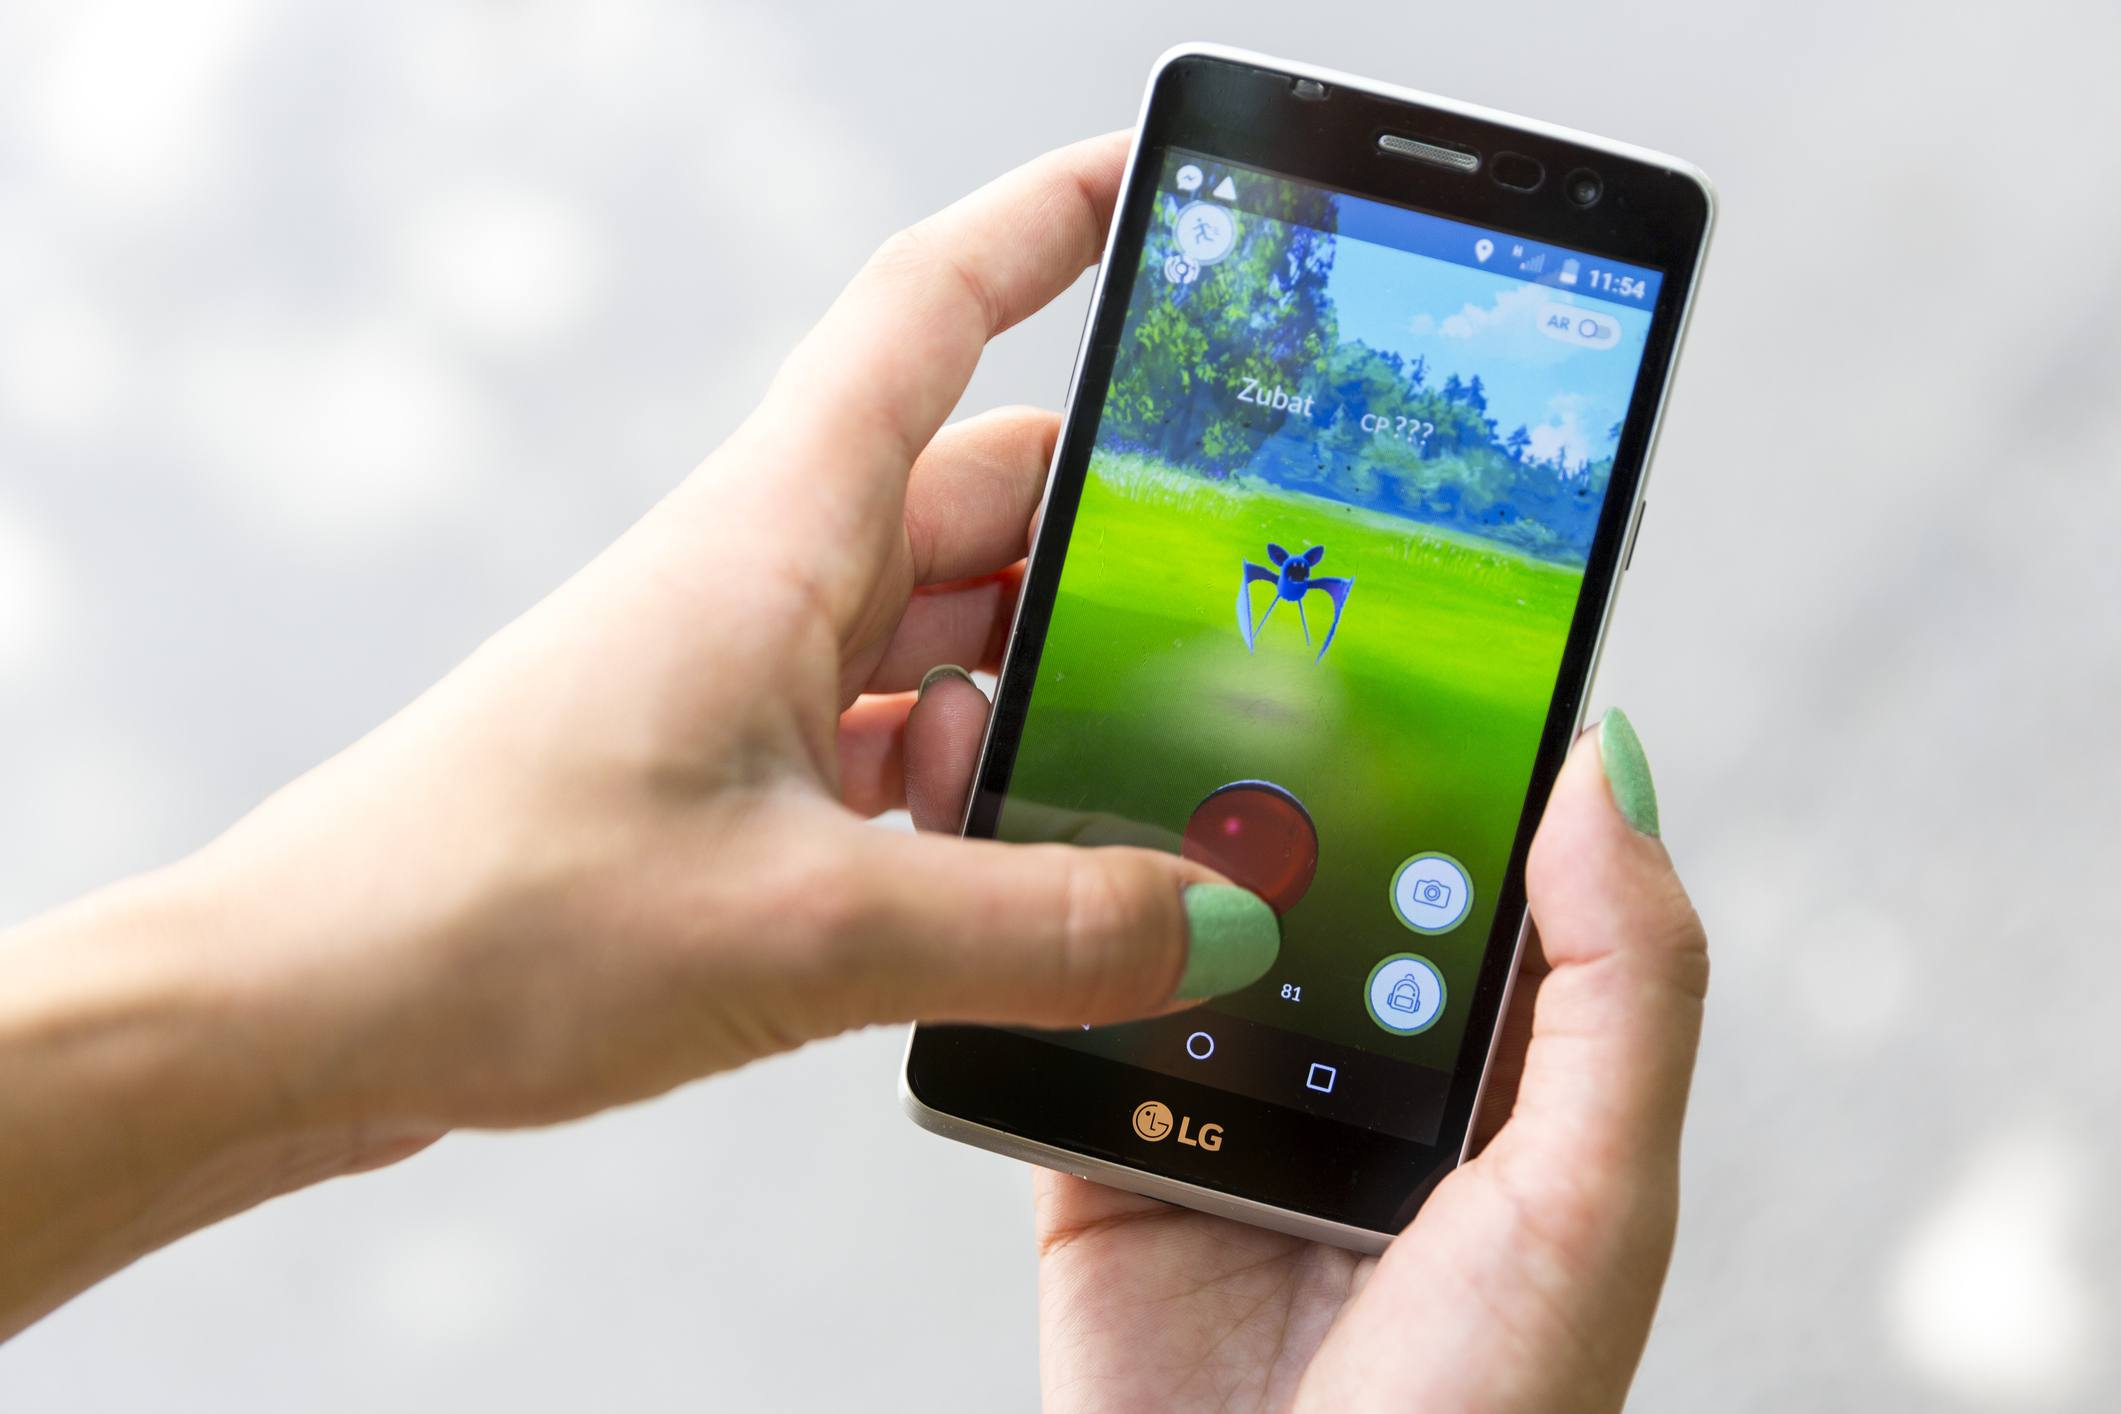 The Top 5 Pokemon Go Cheat Codes